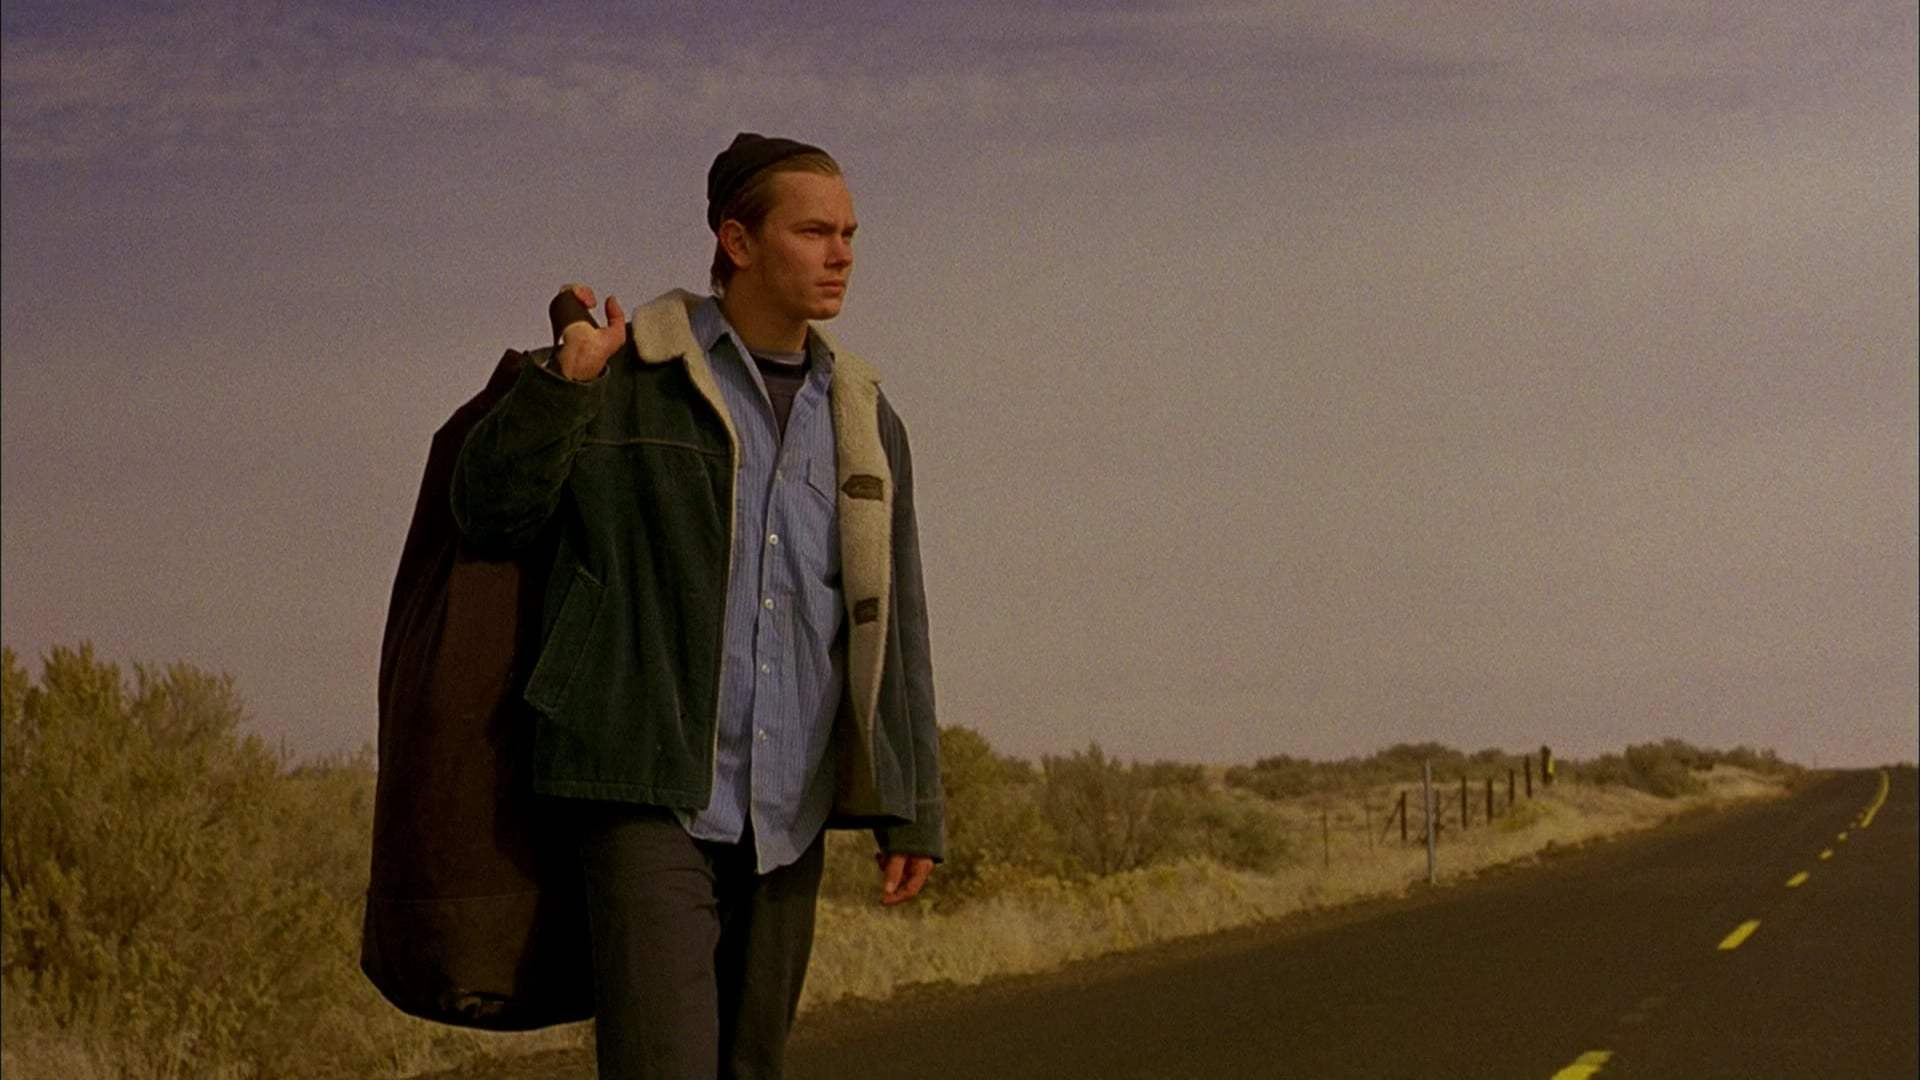 River Phoenix as Mike in 'My Own Private Idaho' (1991).